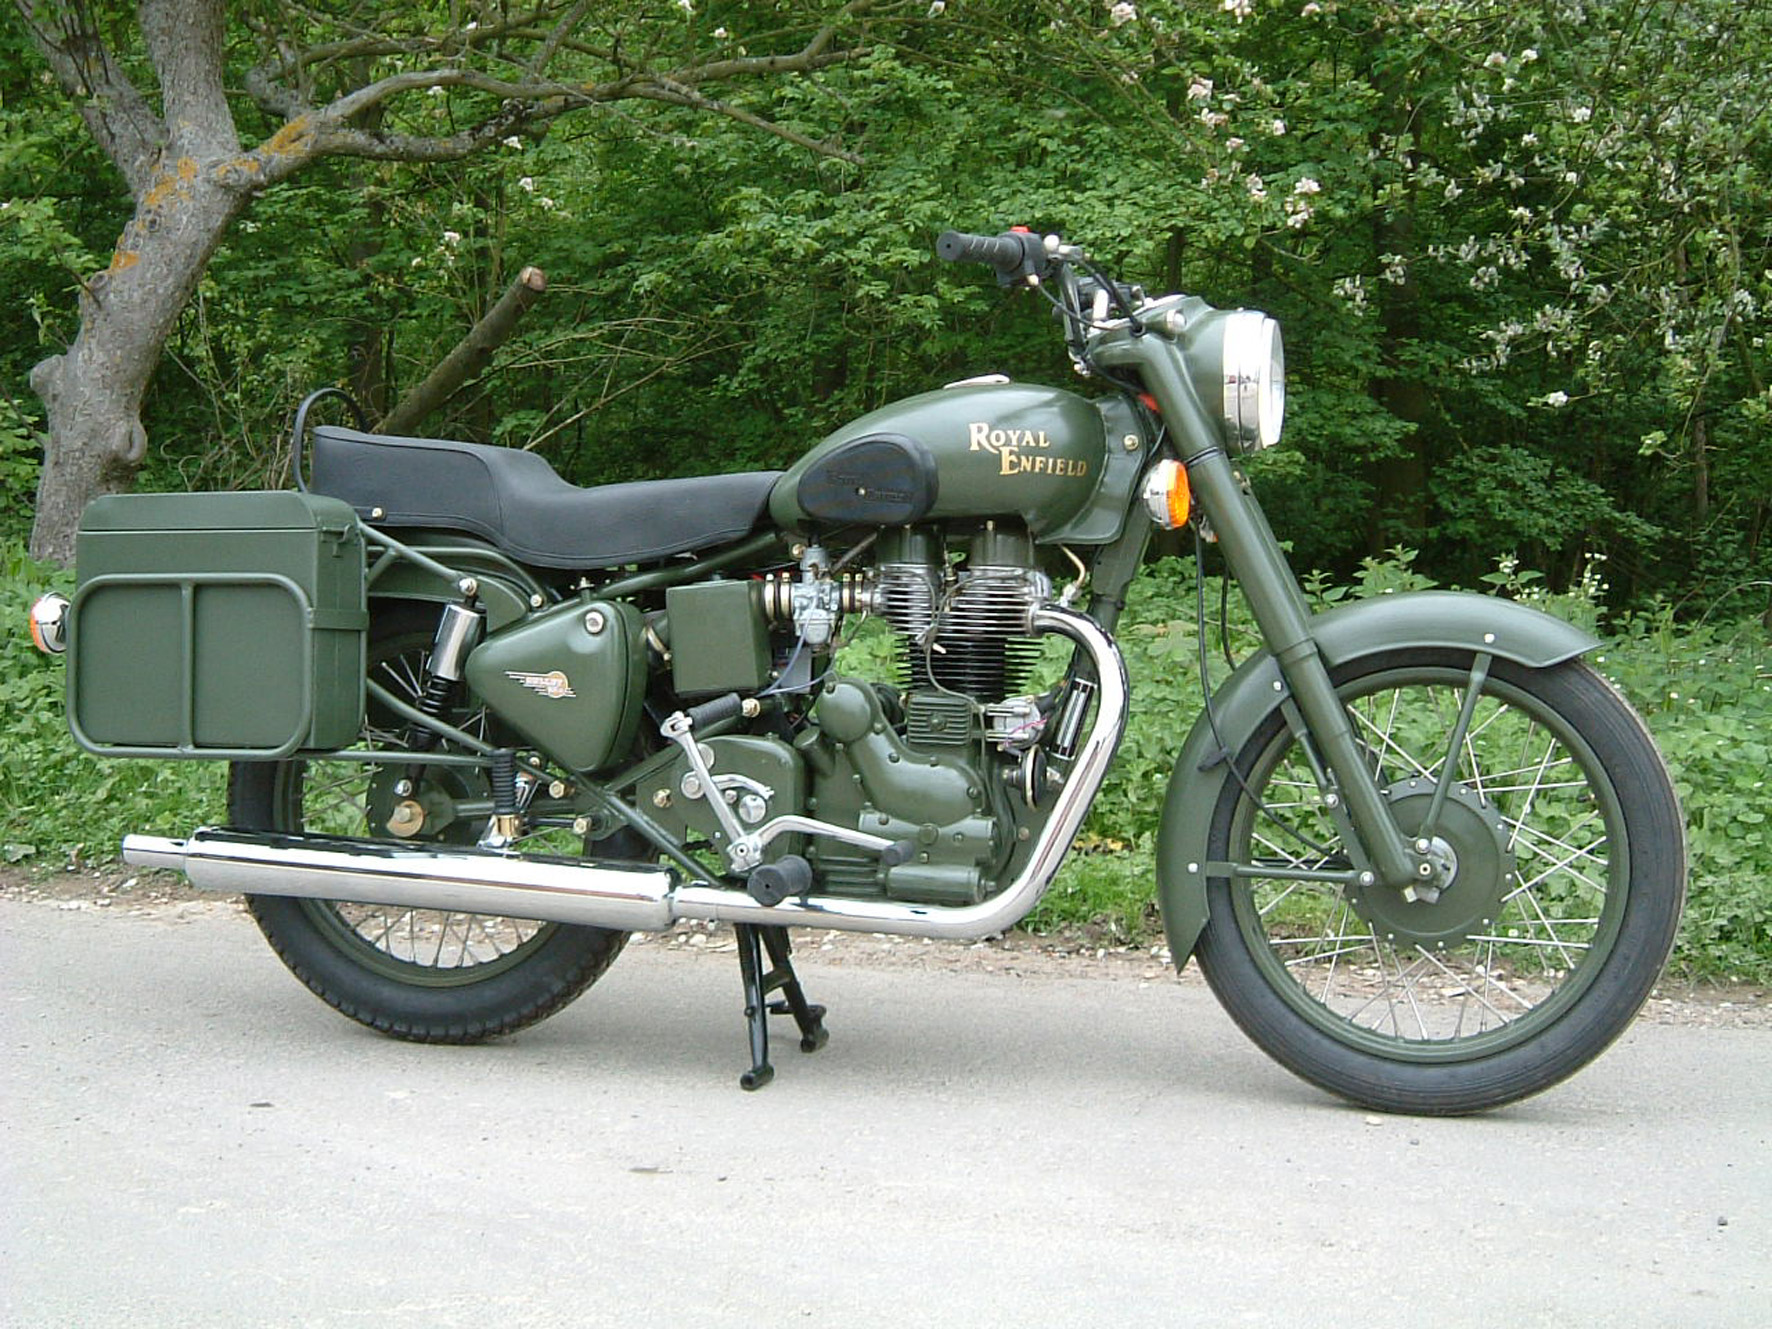 Royal Enfield Bullet 500 Army 1992 images #123383